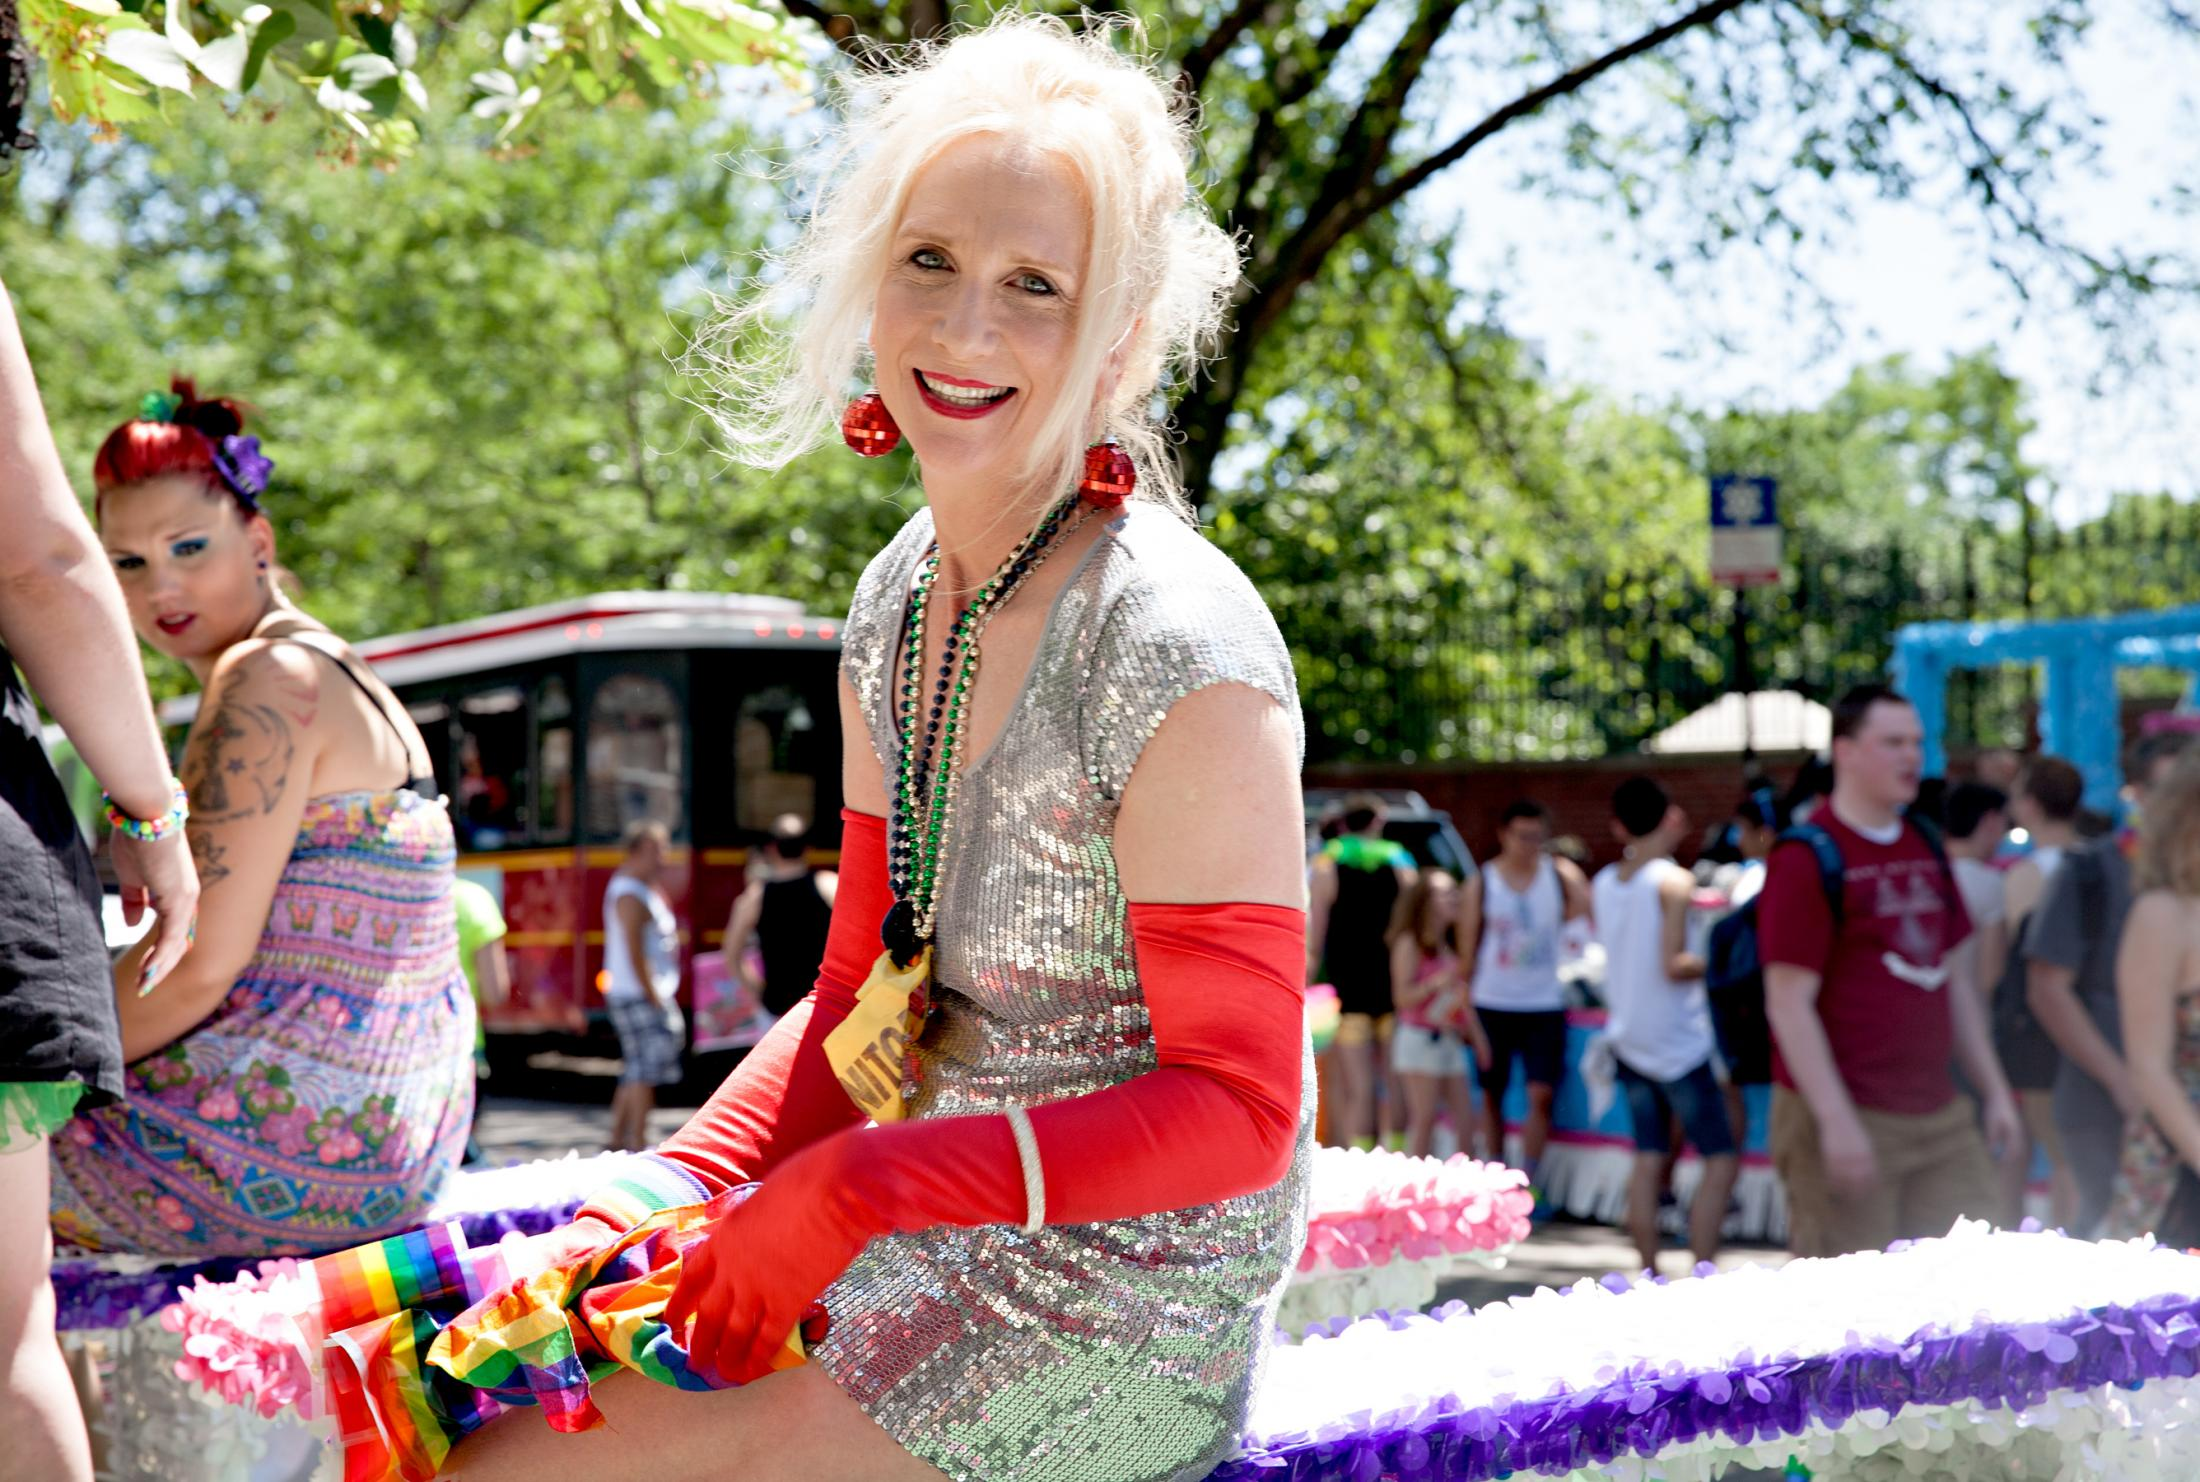 Art and Documentary Photography - Loading DK-PrideParade-84-Edit.jpg